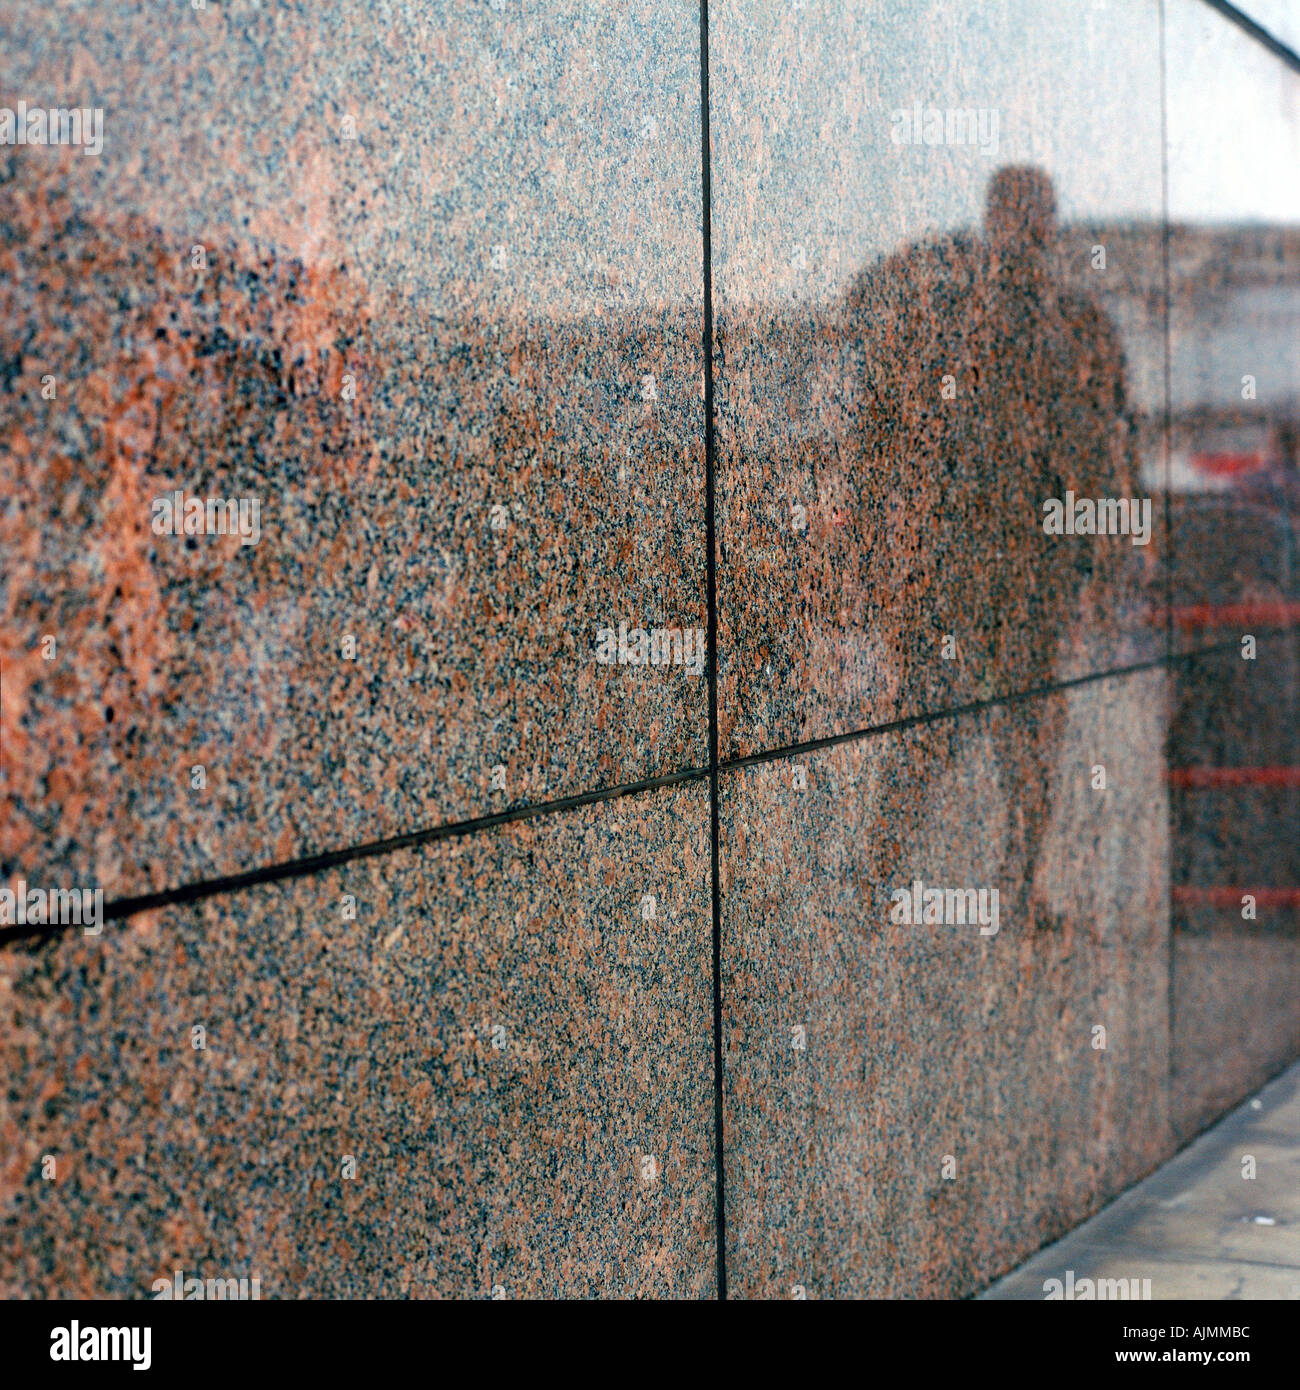 Man reflected on wall tile - Stock Image